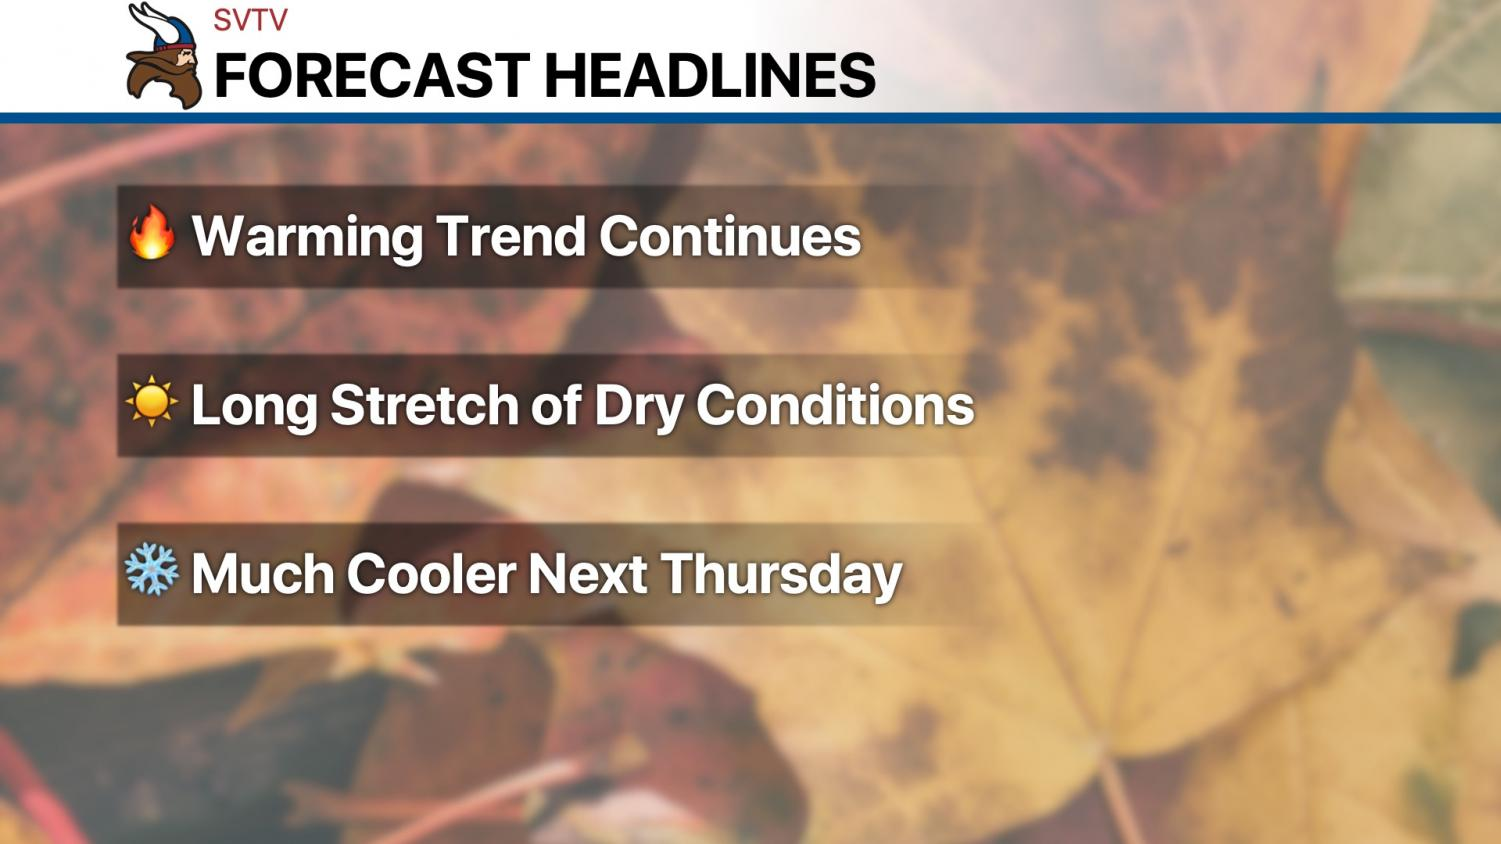 Warming trend continues before another cold blast arrives next Thursday